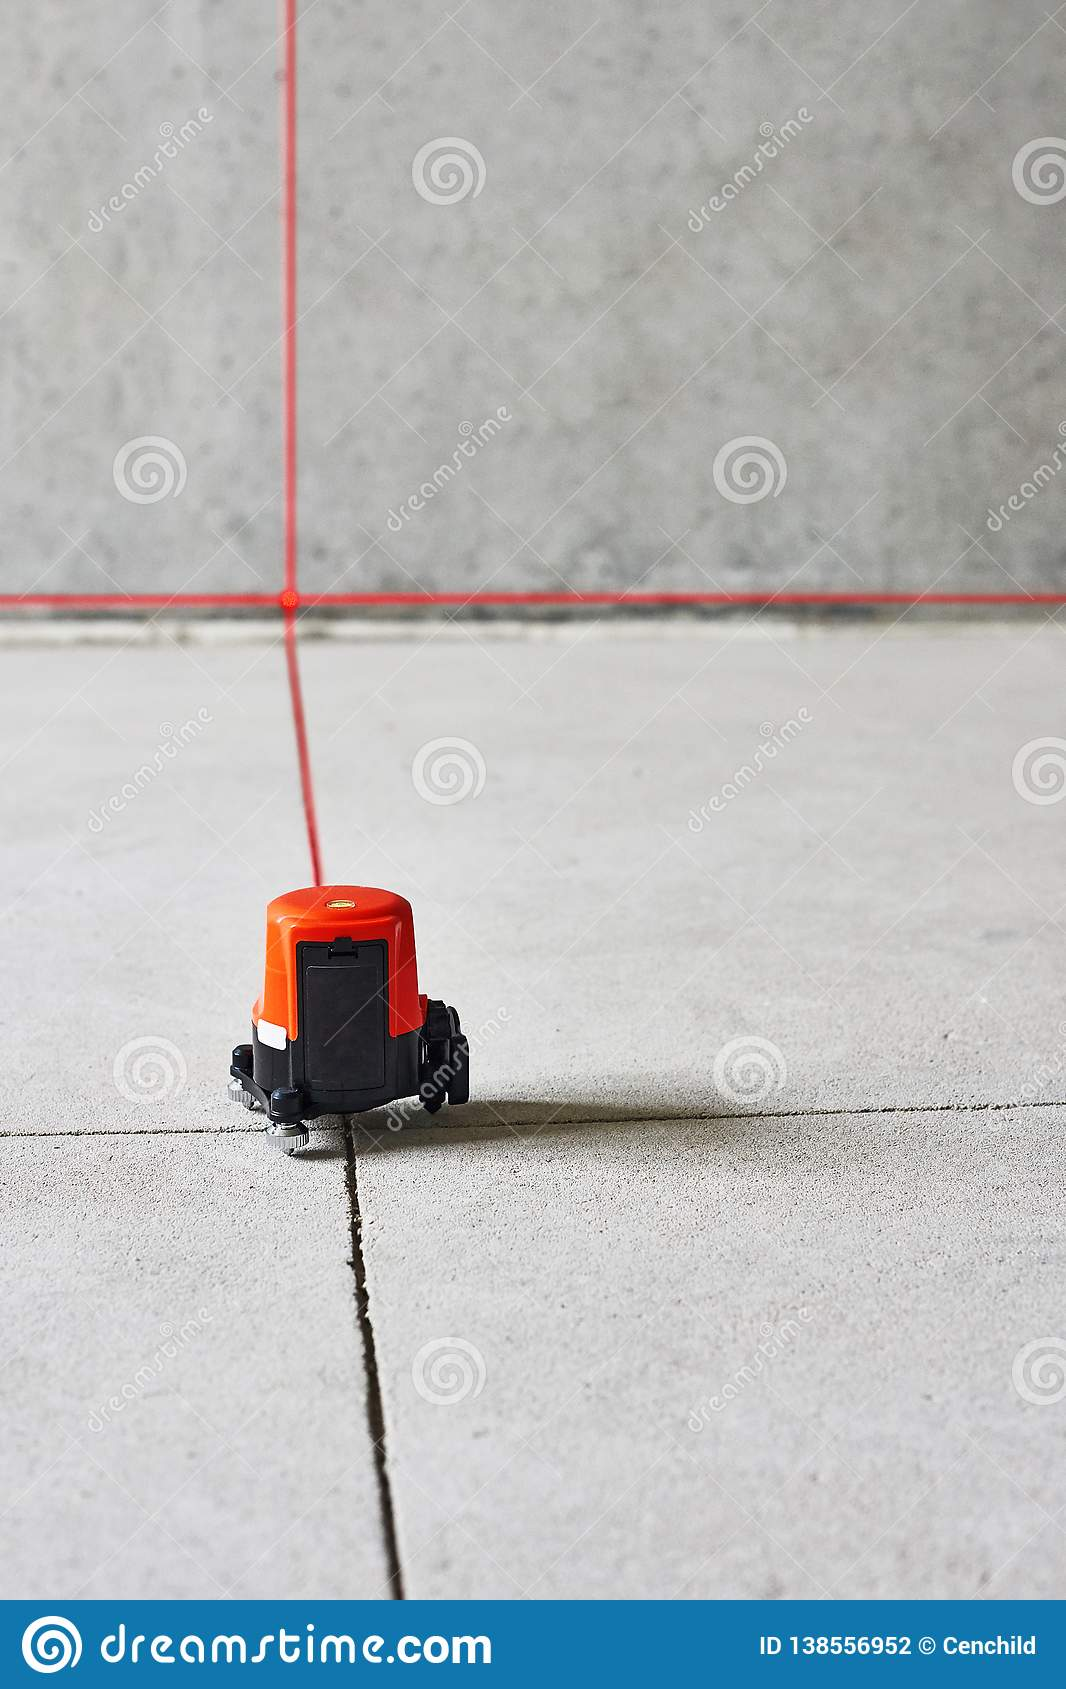 Laser Level Measuring Tool In Construction Site On The Floor In